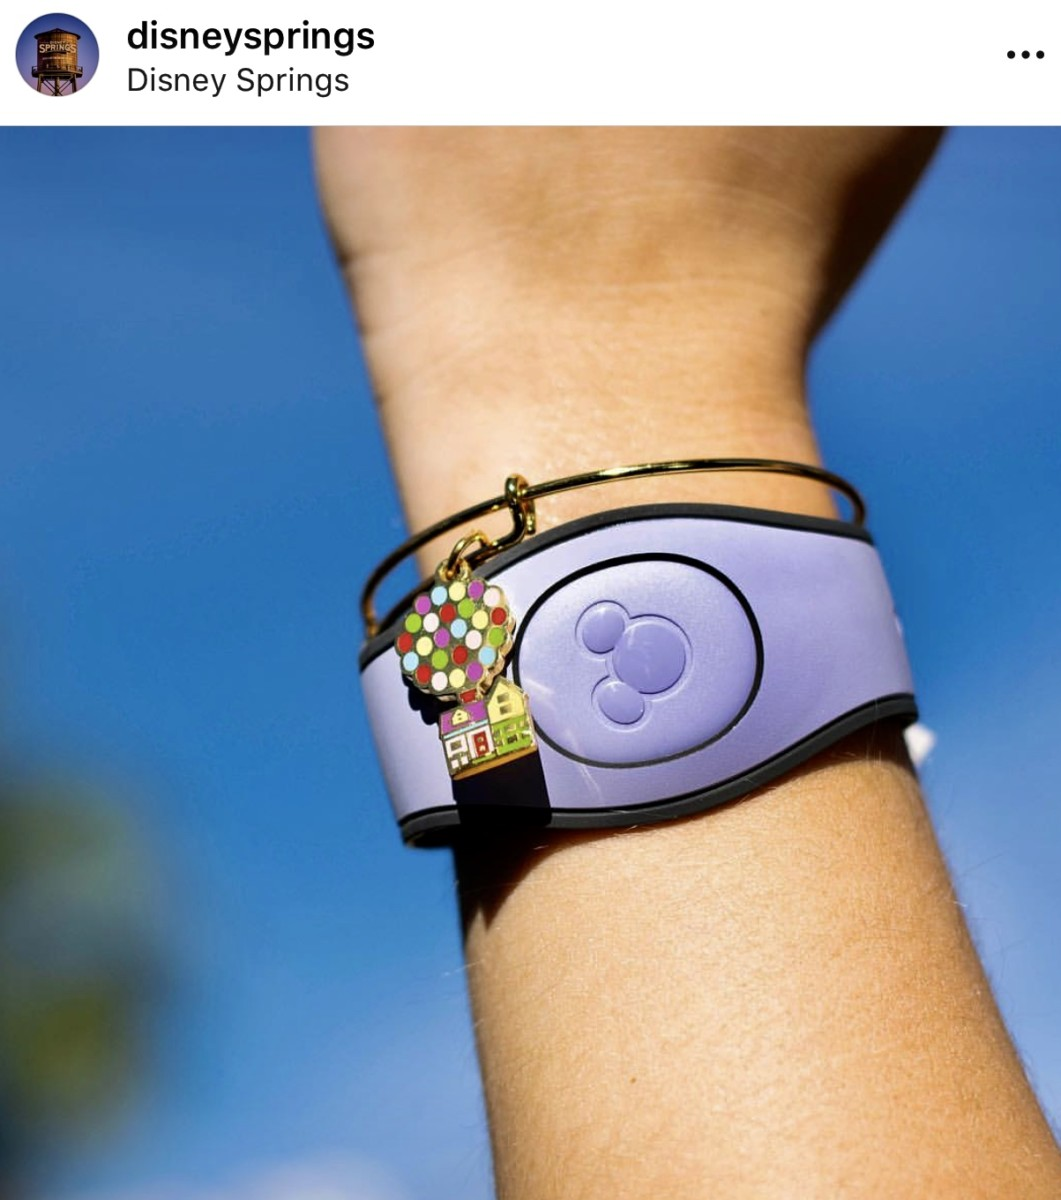 New MagicBand Colors Available at Disney Springs 3